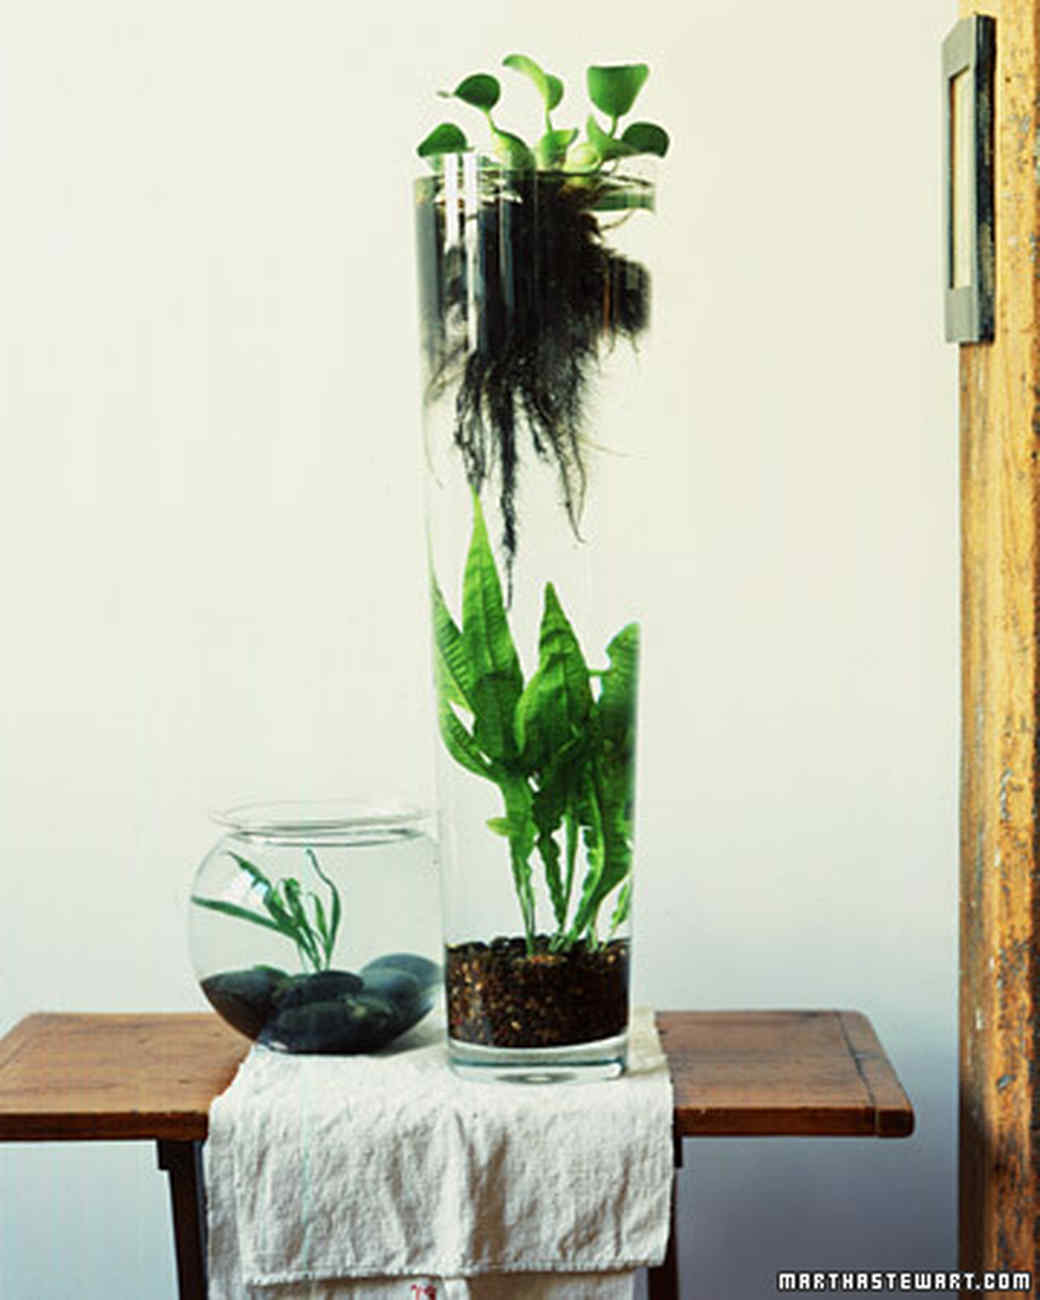 50 Creative Ideas To Display Your Air Plants In A Most: 11 Creative Container Garden Ideas